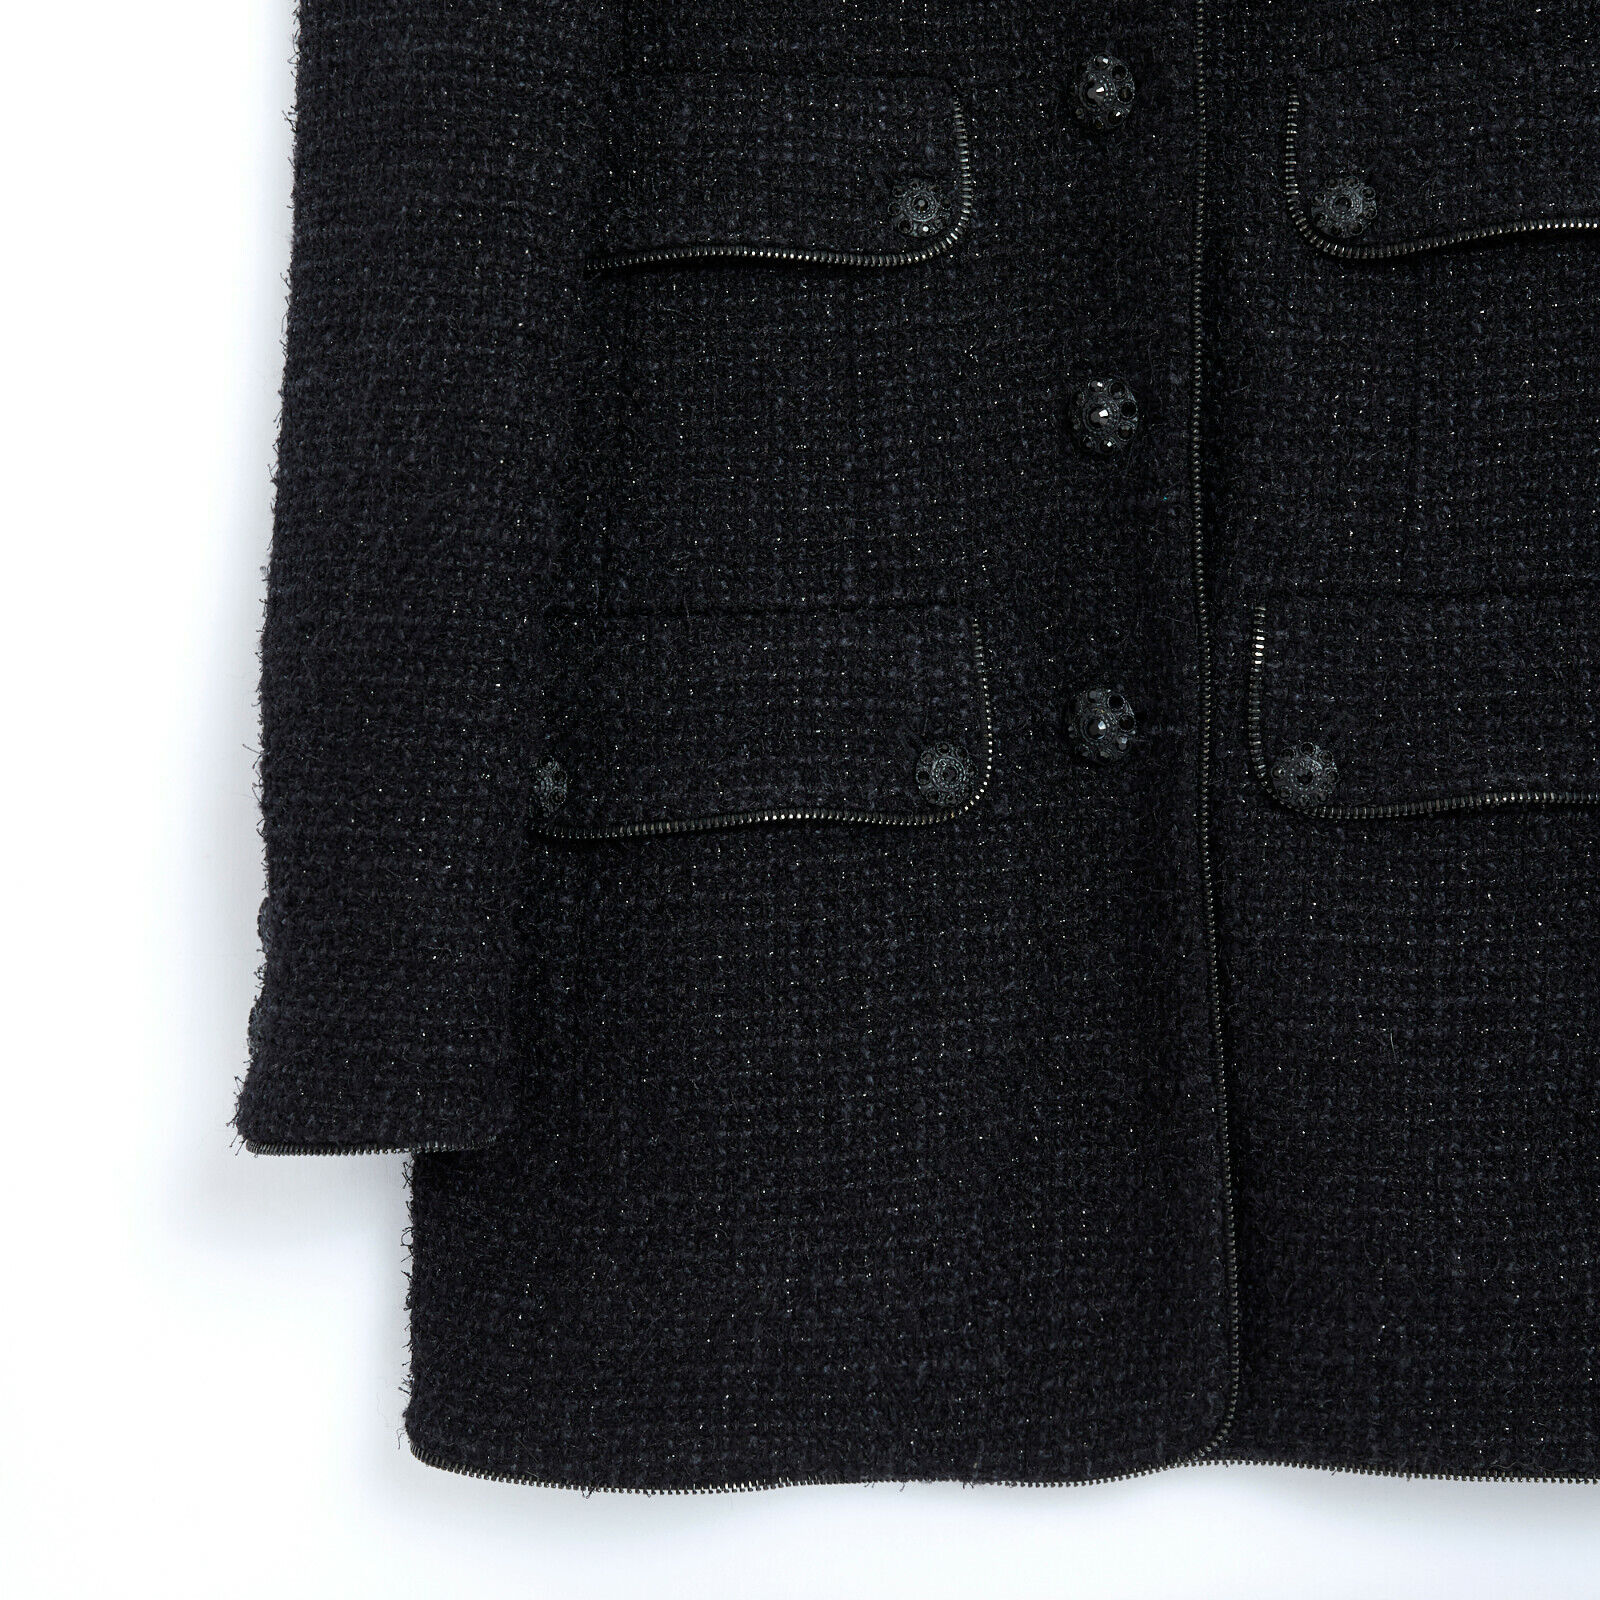 Chanel jacket tweed black long fr38